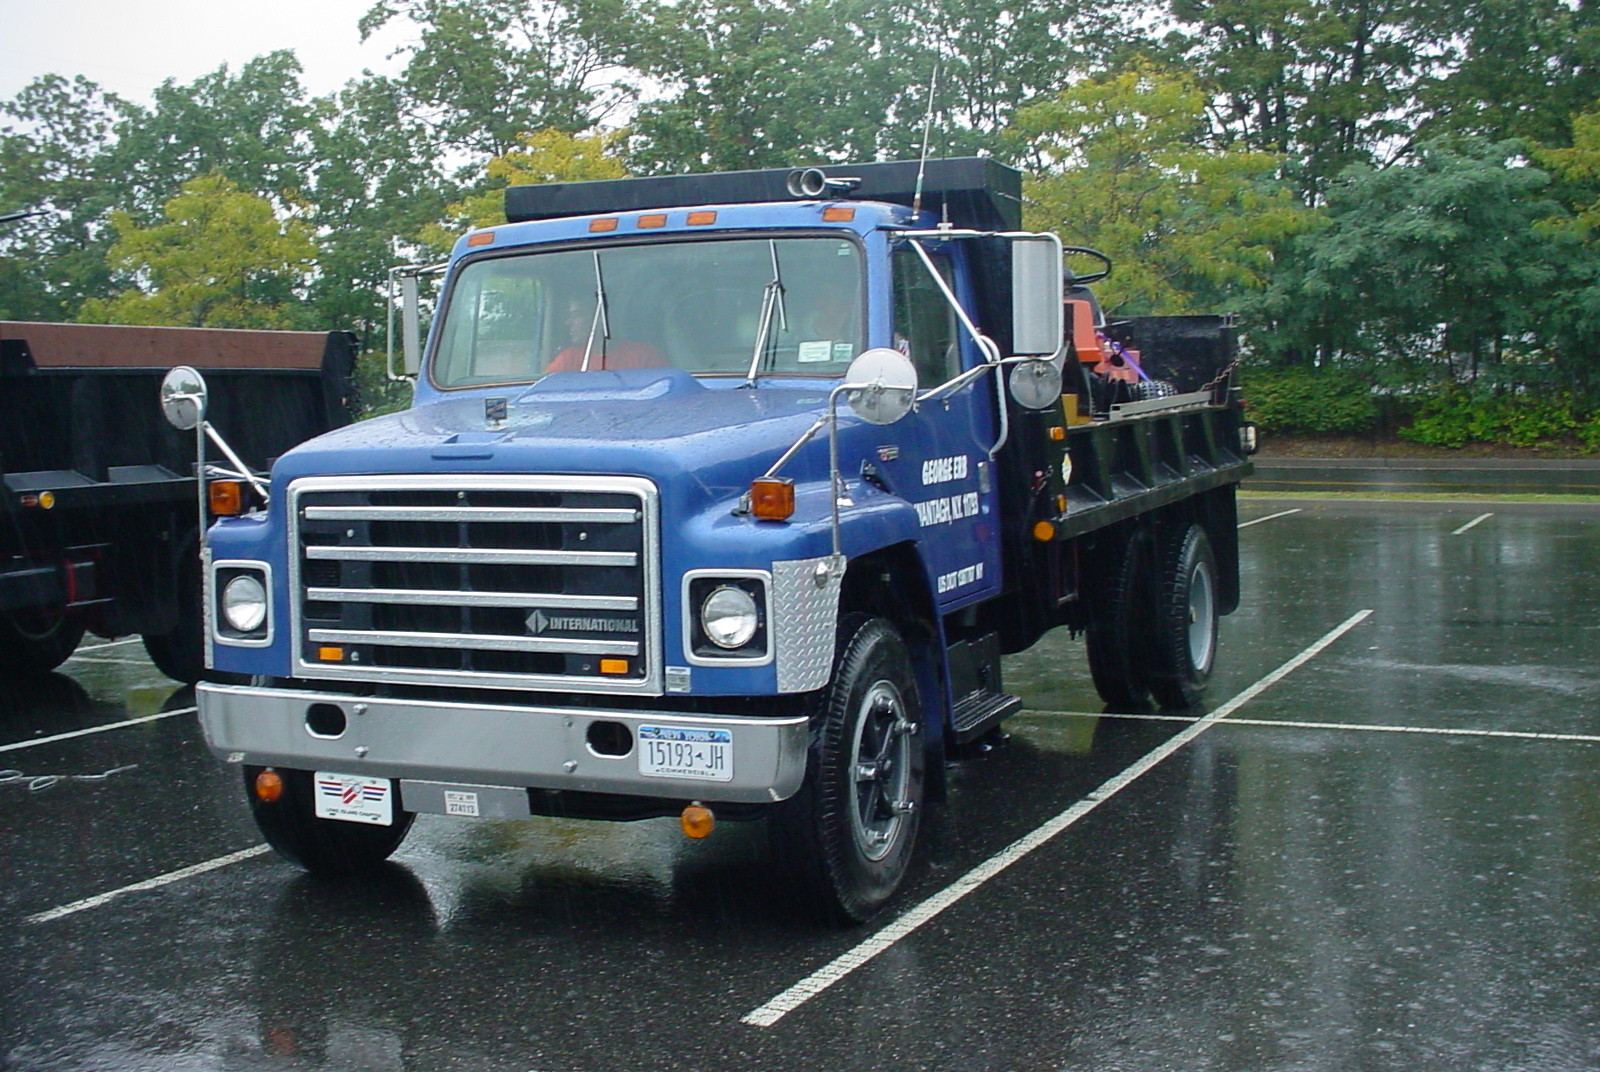 George Erb's 1981 International S-1800 flatbed dump